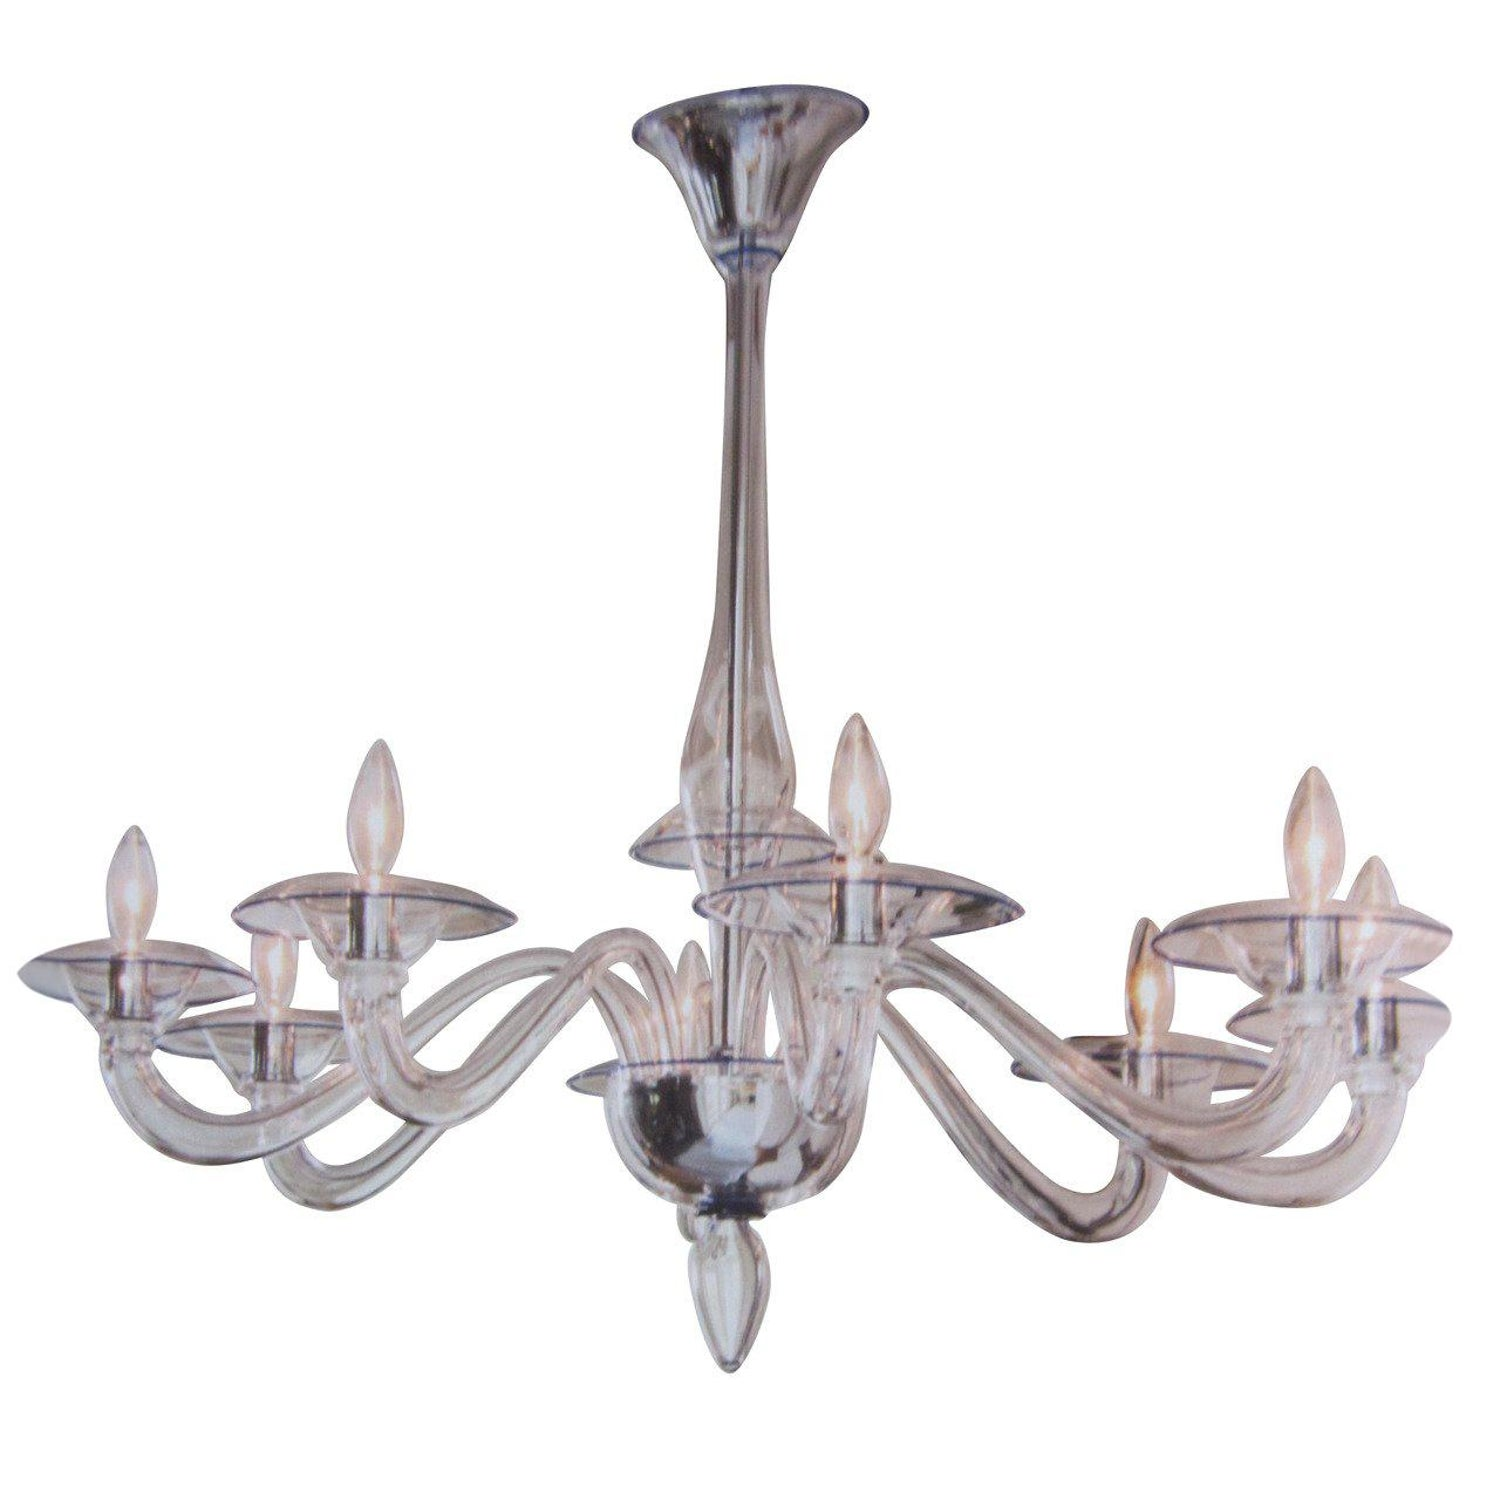 Italian Art Deco Sculptured Glass And Chrome Chandelier In Pink, 1940s